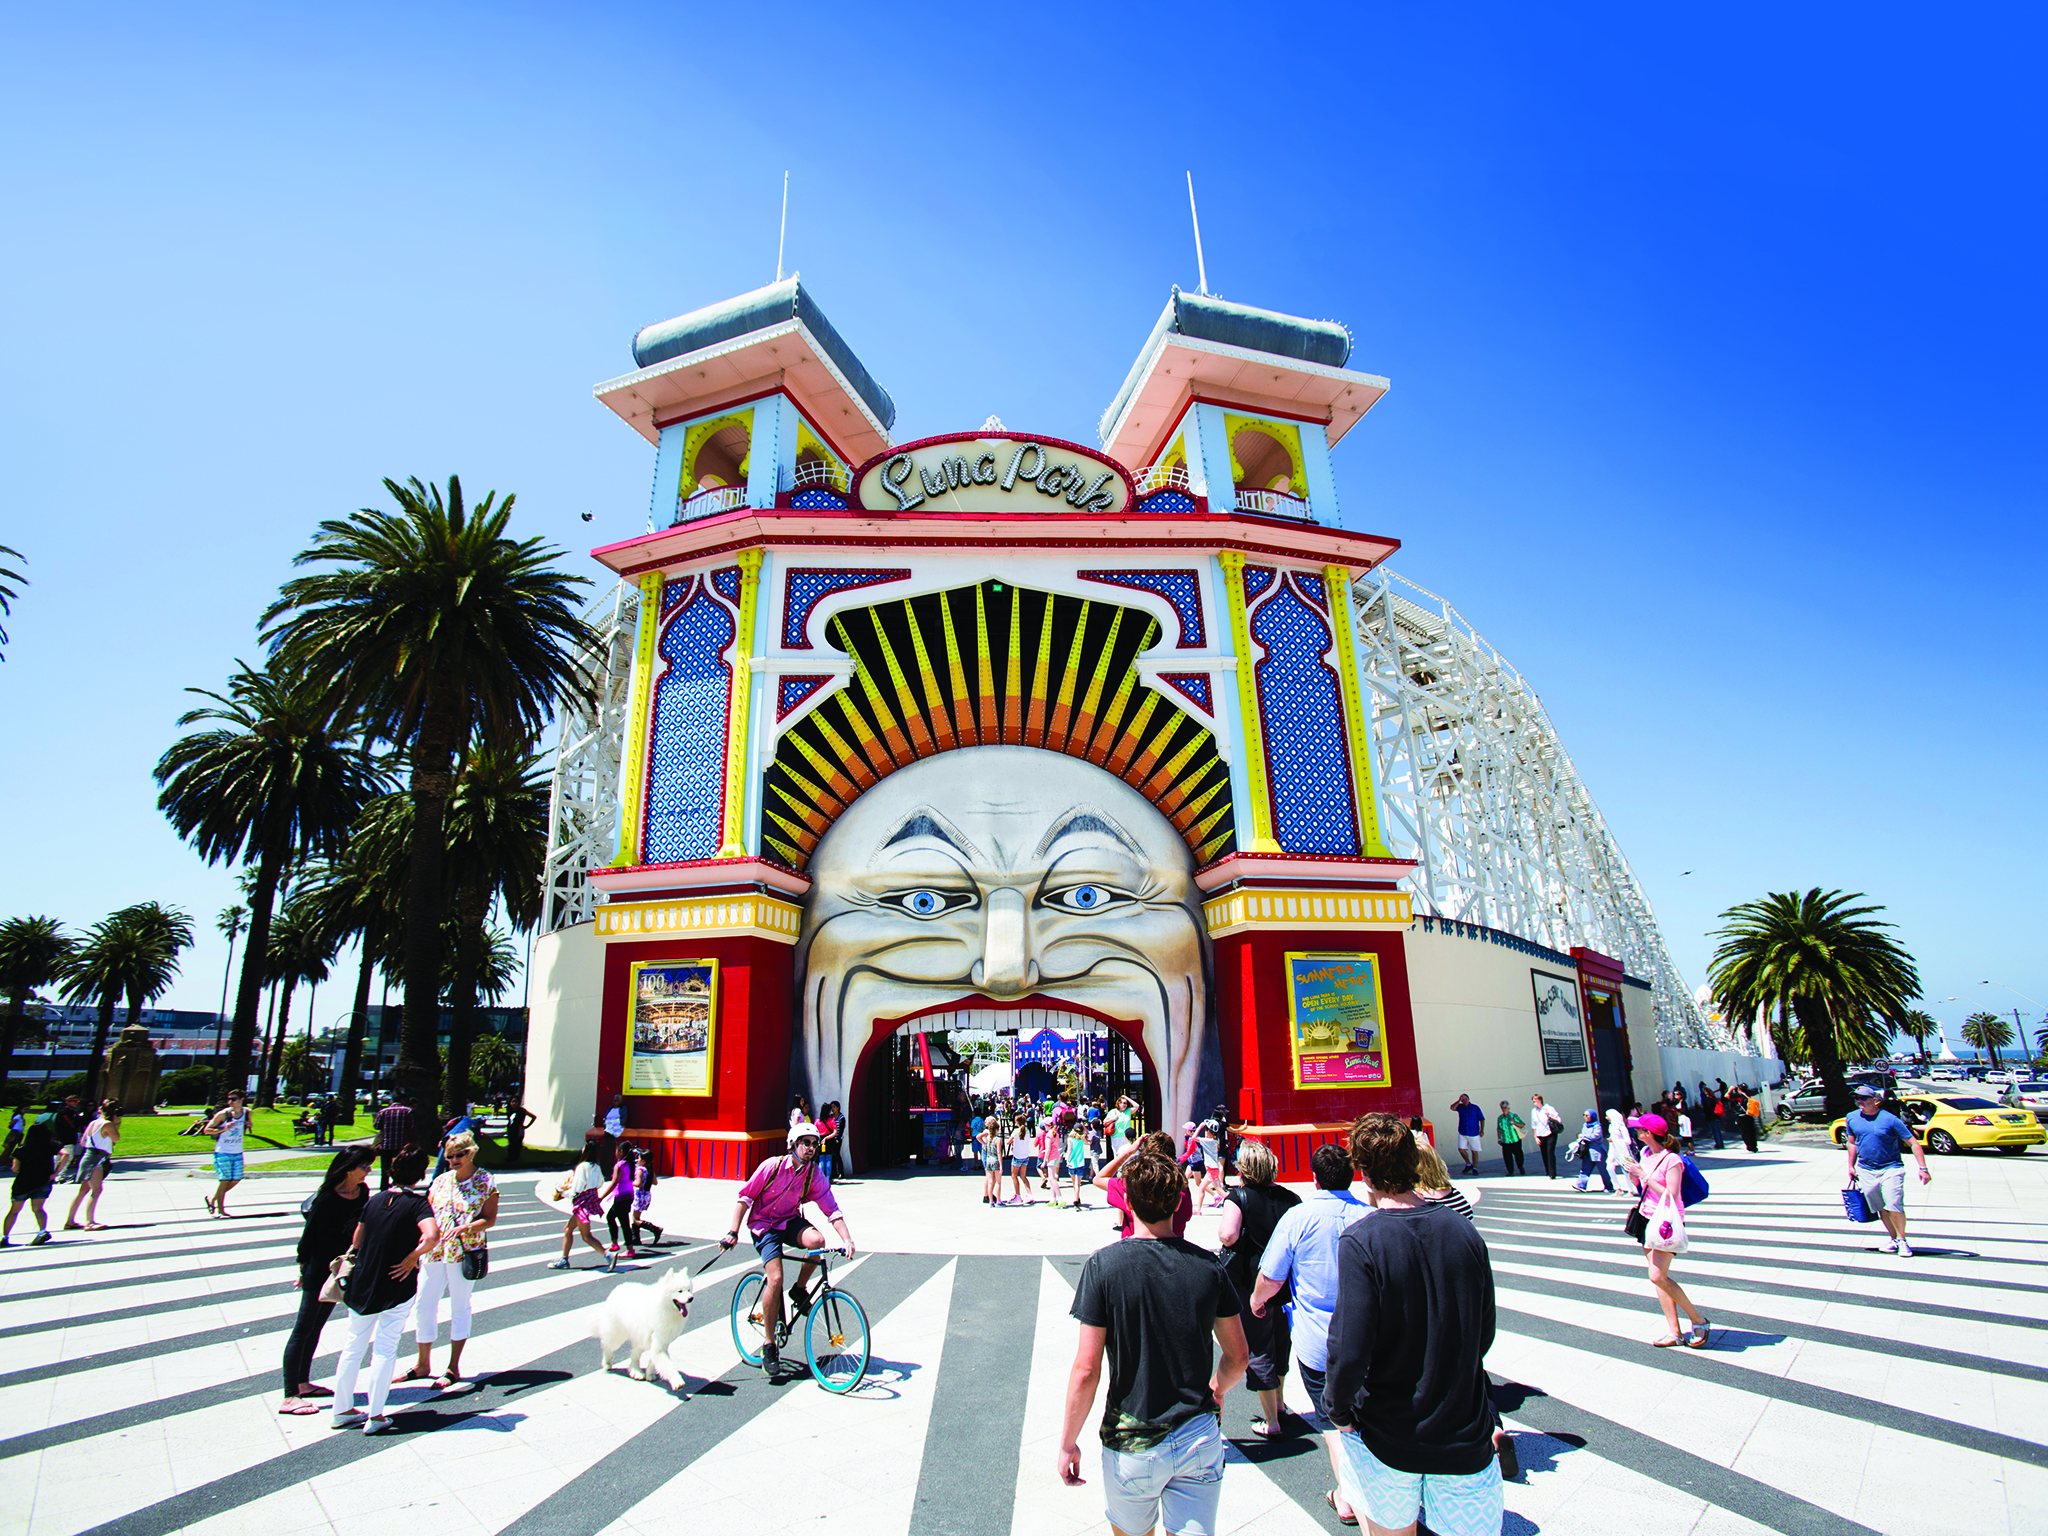 How To Start Your Own Photo Booth Rental Business - Part 1 Luna park pictures melbourne